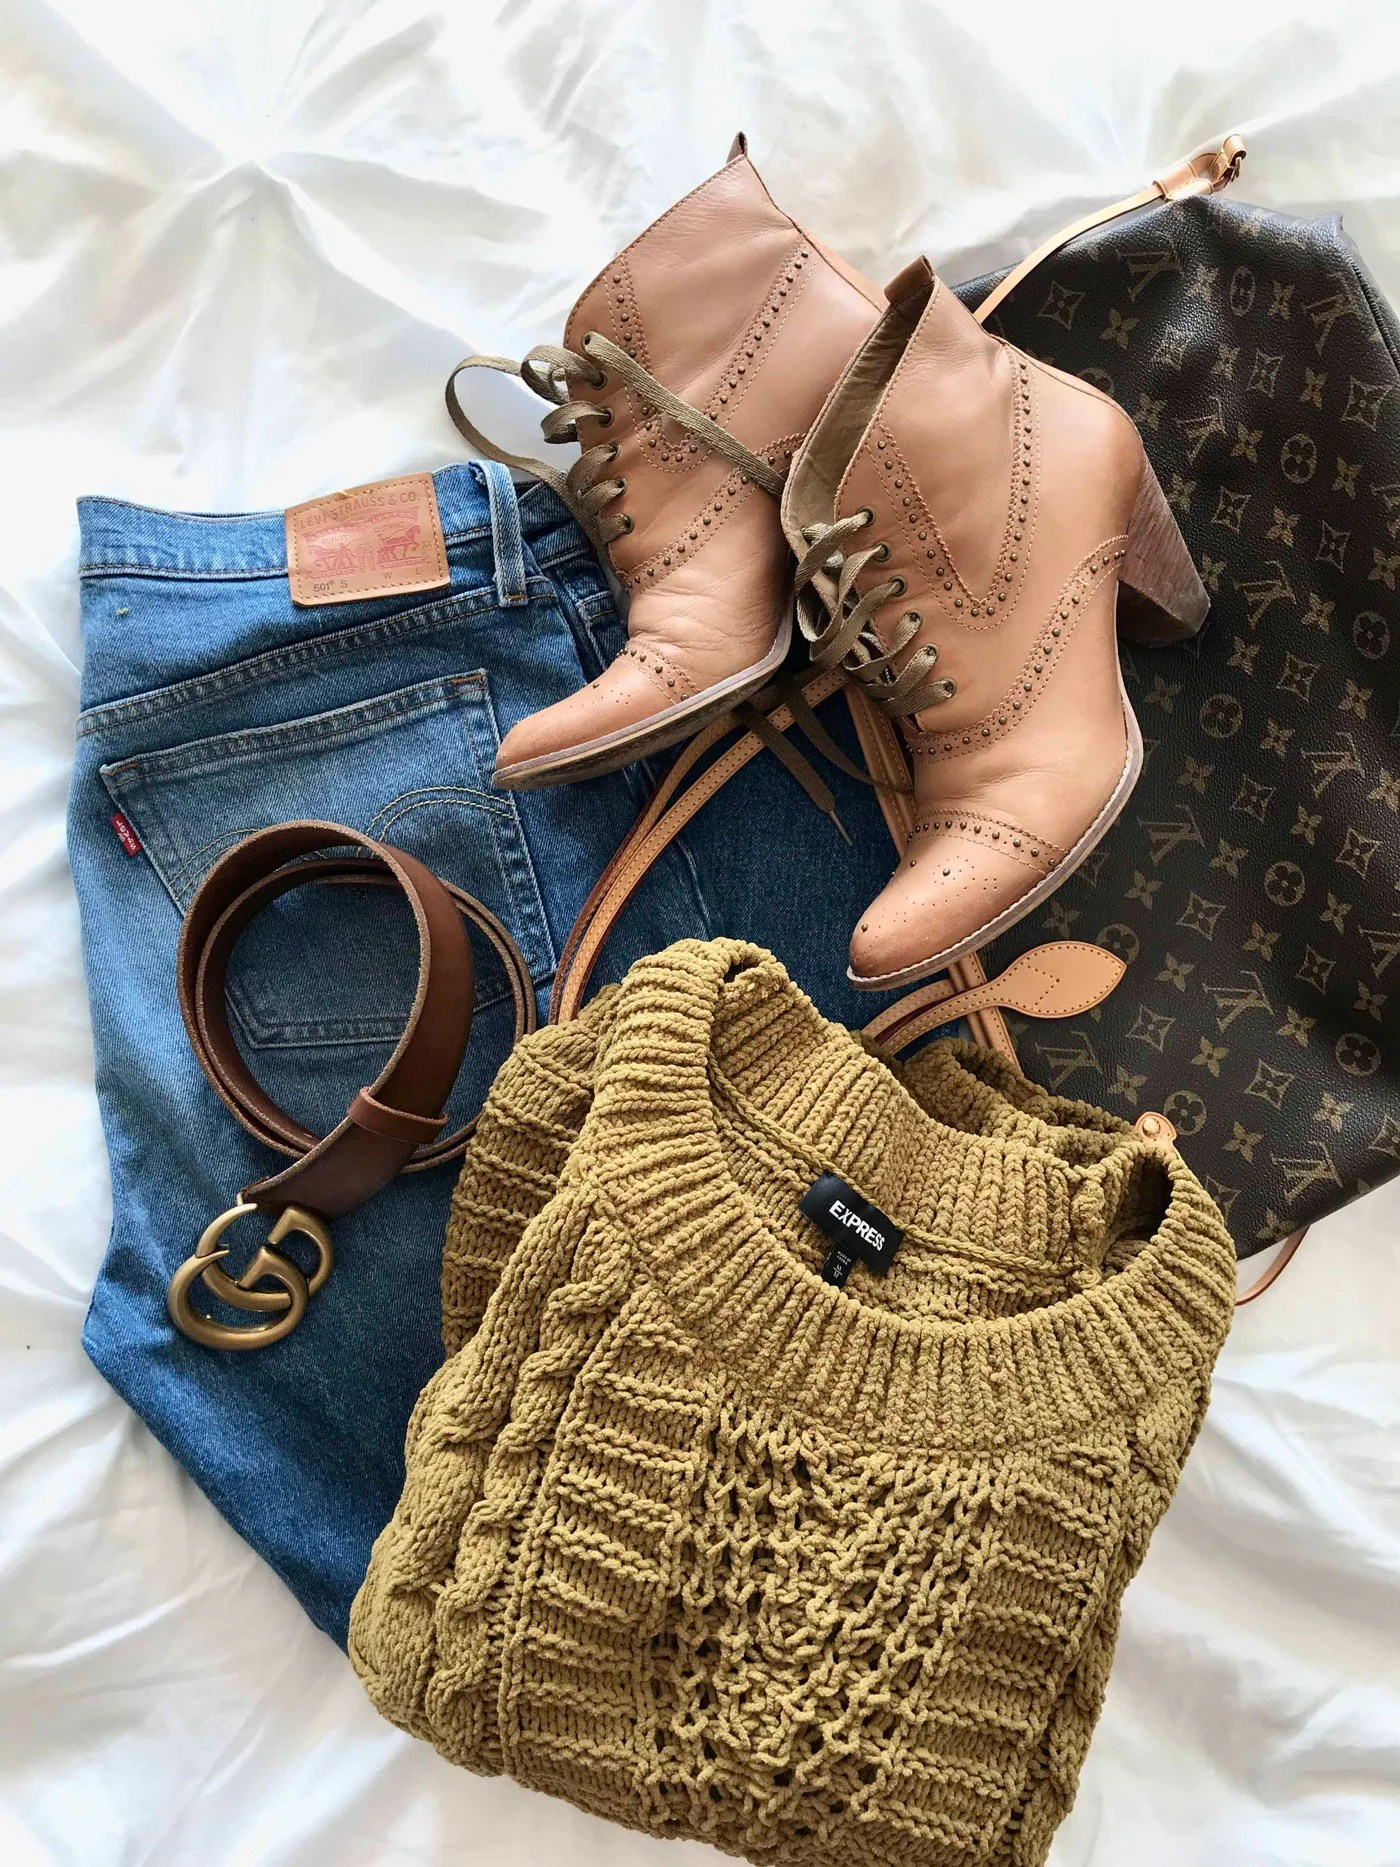 Express Cable Knit Chenille Sweater, Levi's 501, Gucci Belt